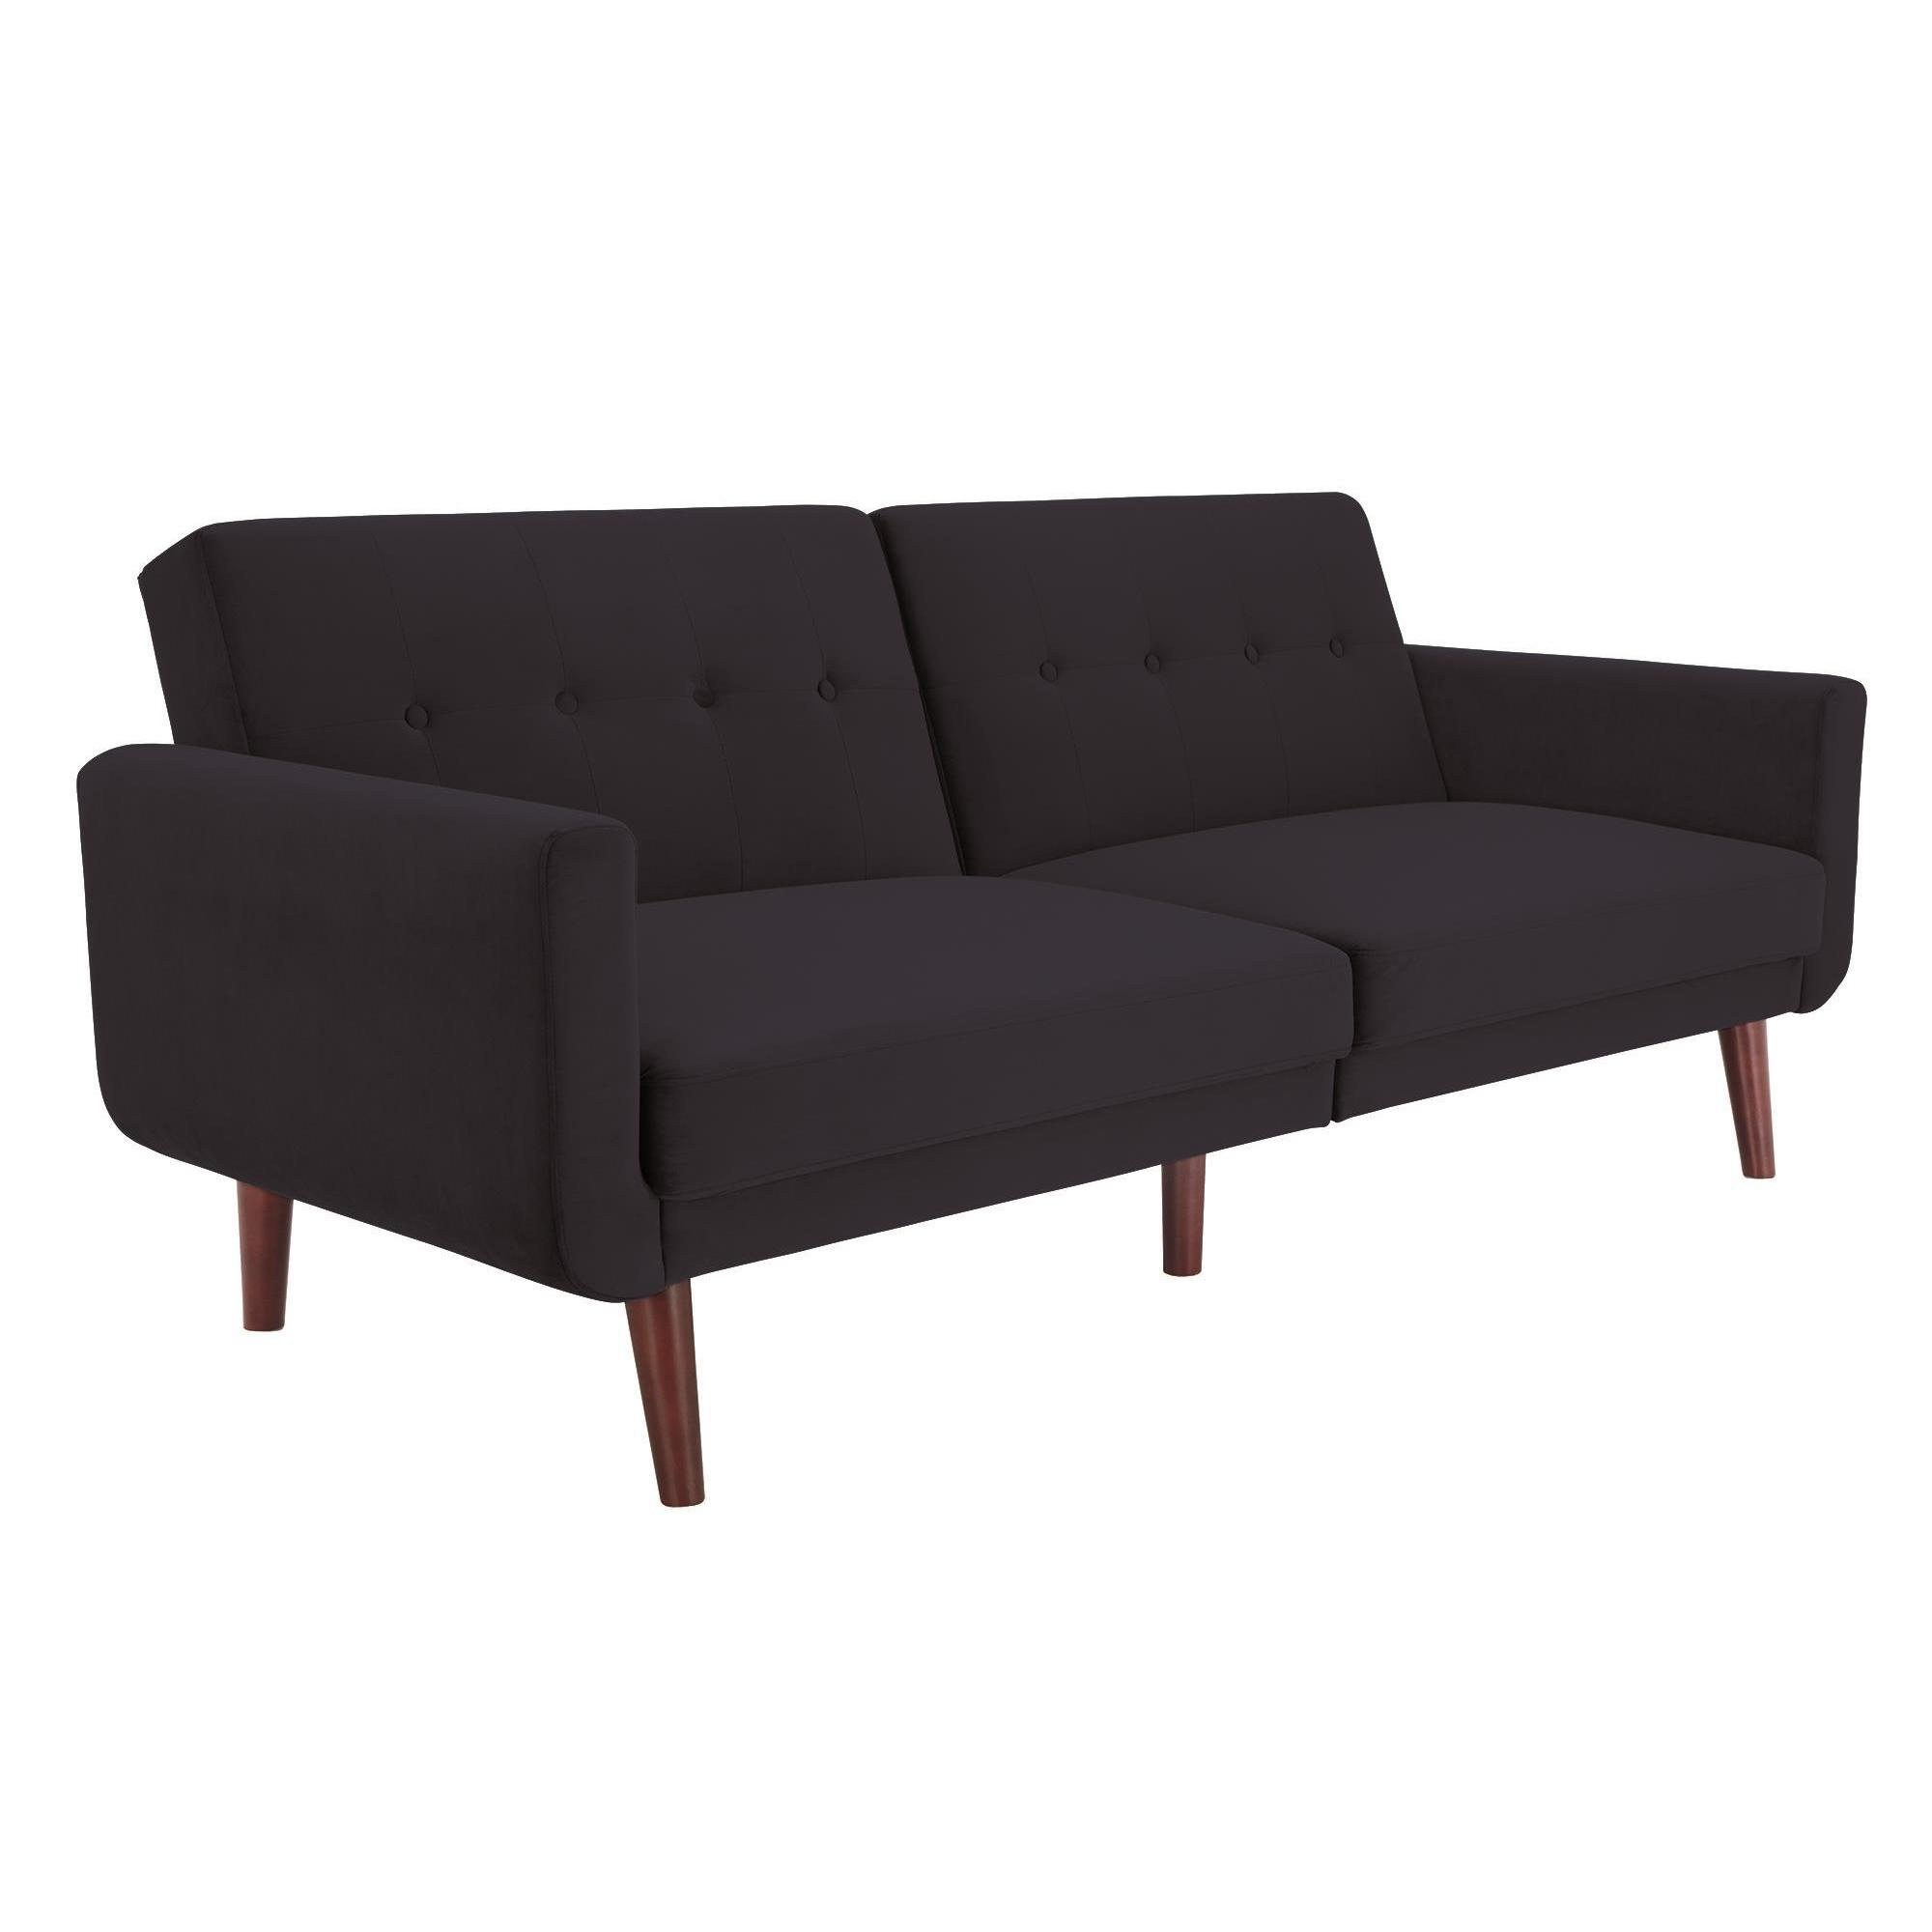 Avenue Greene Fania Blue Modern Velvet Futon (2 Options Available)